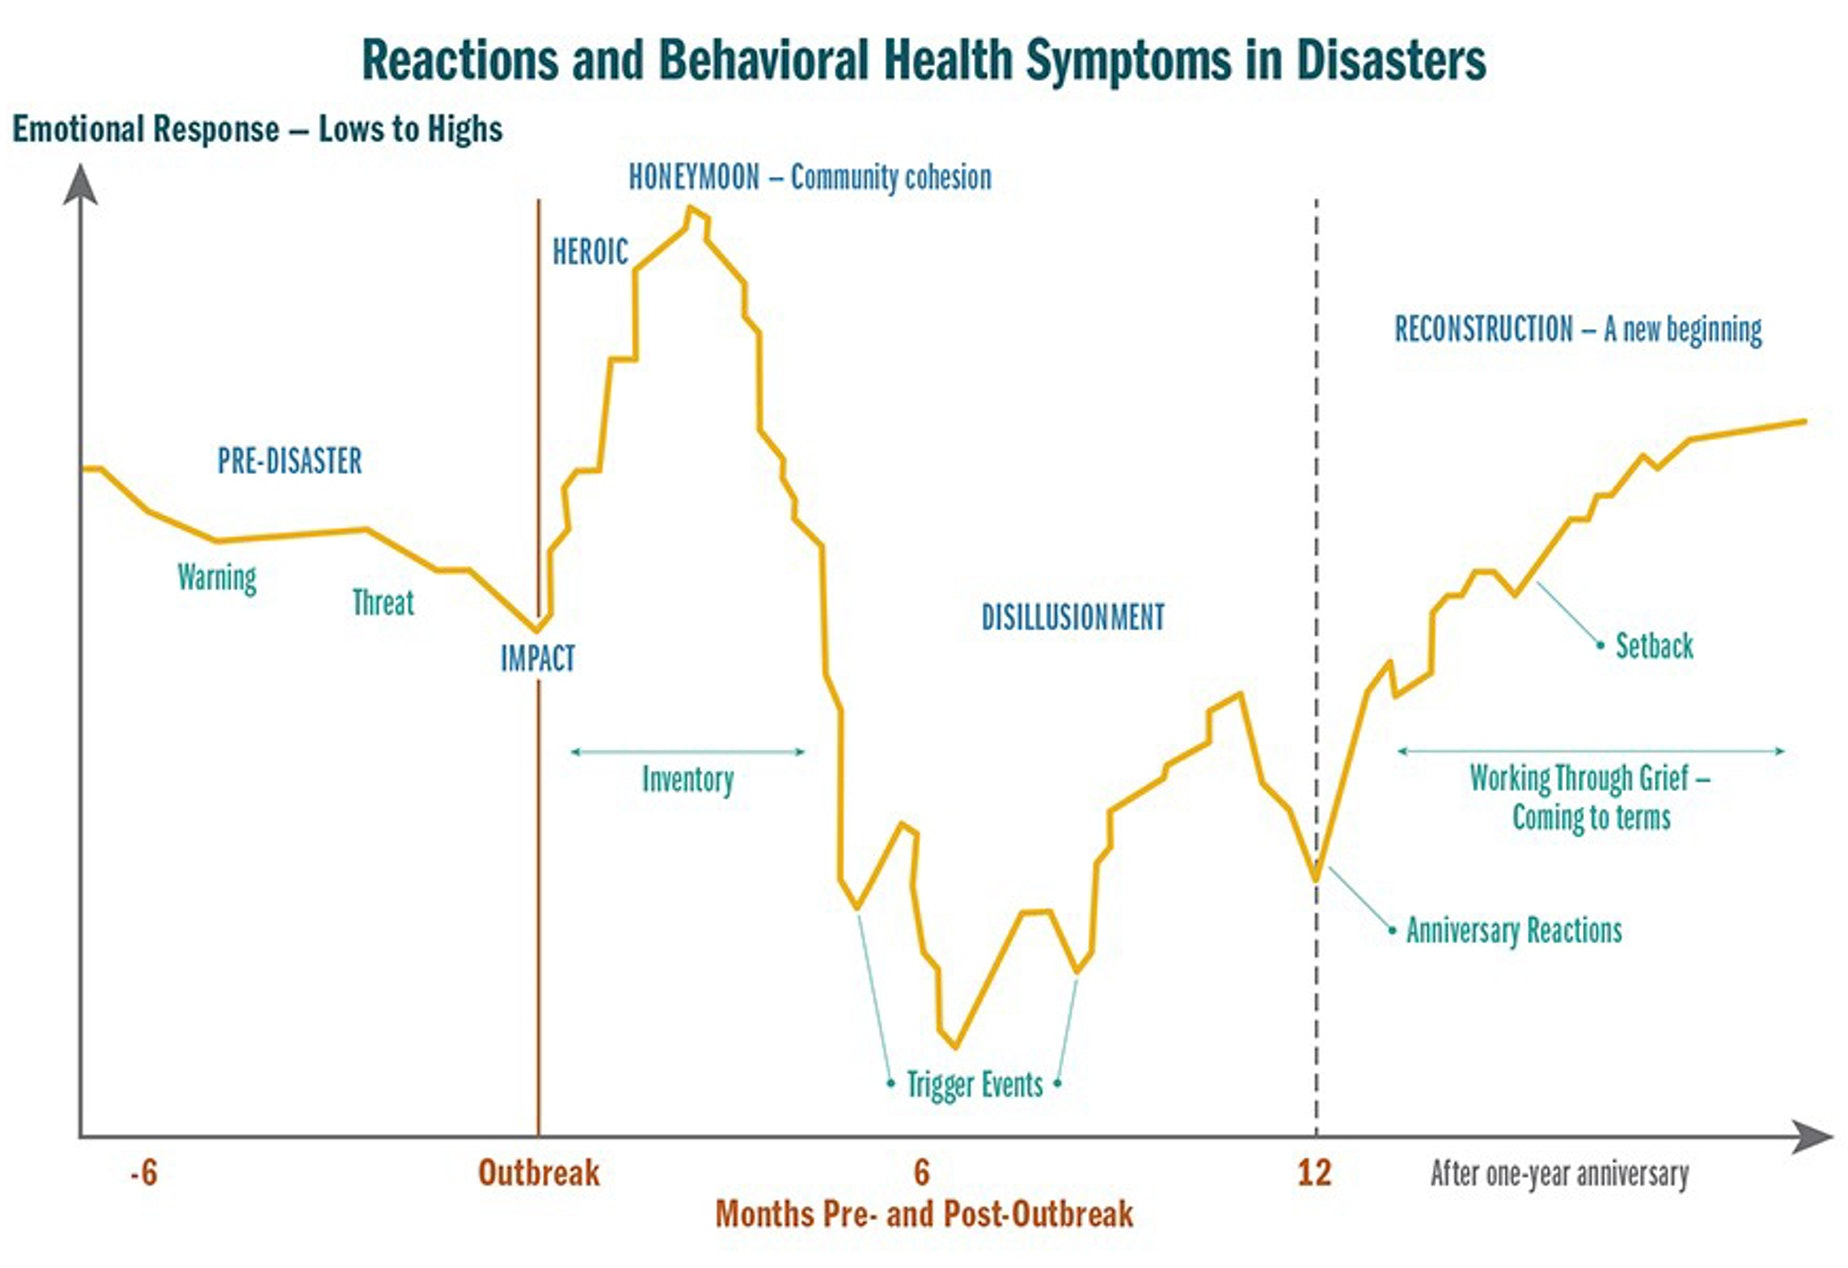 Graph depicting trajectory of emotional lows and highs during disaster